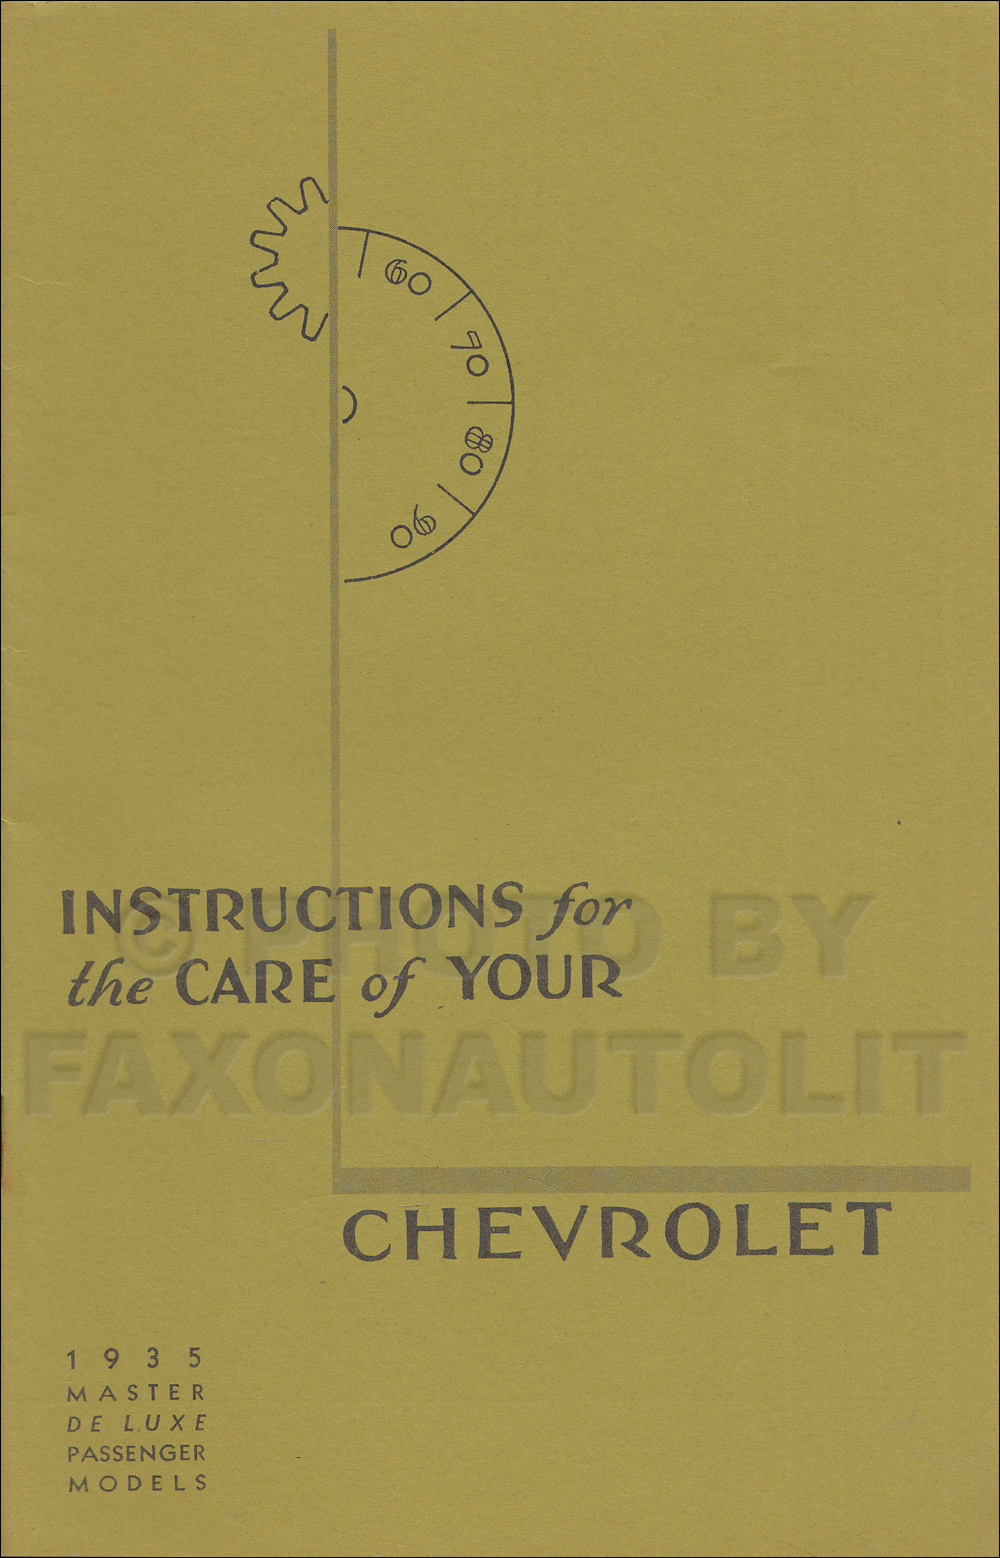 1935 Chevrolet Wiring Diagram Repair Shop Manual Original Master Car Owners Reprint Older Edition